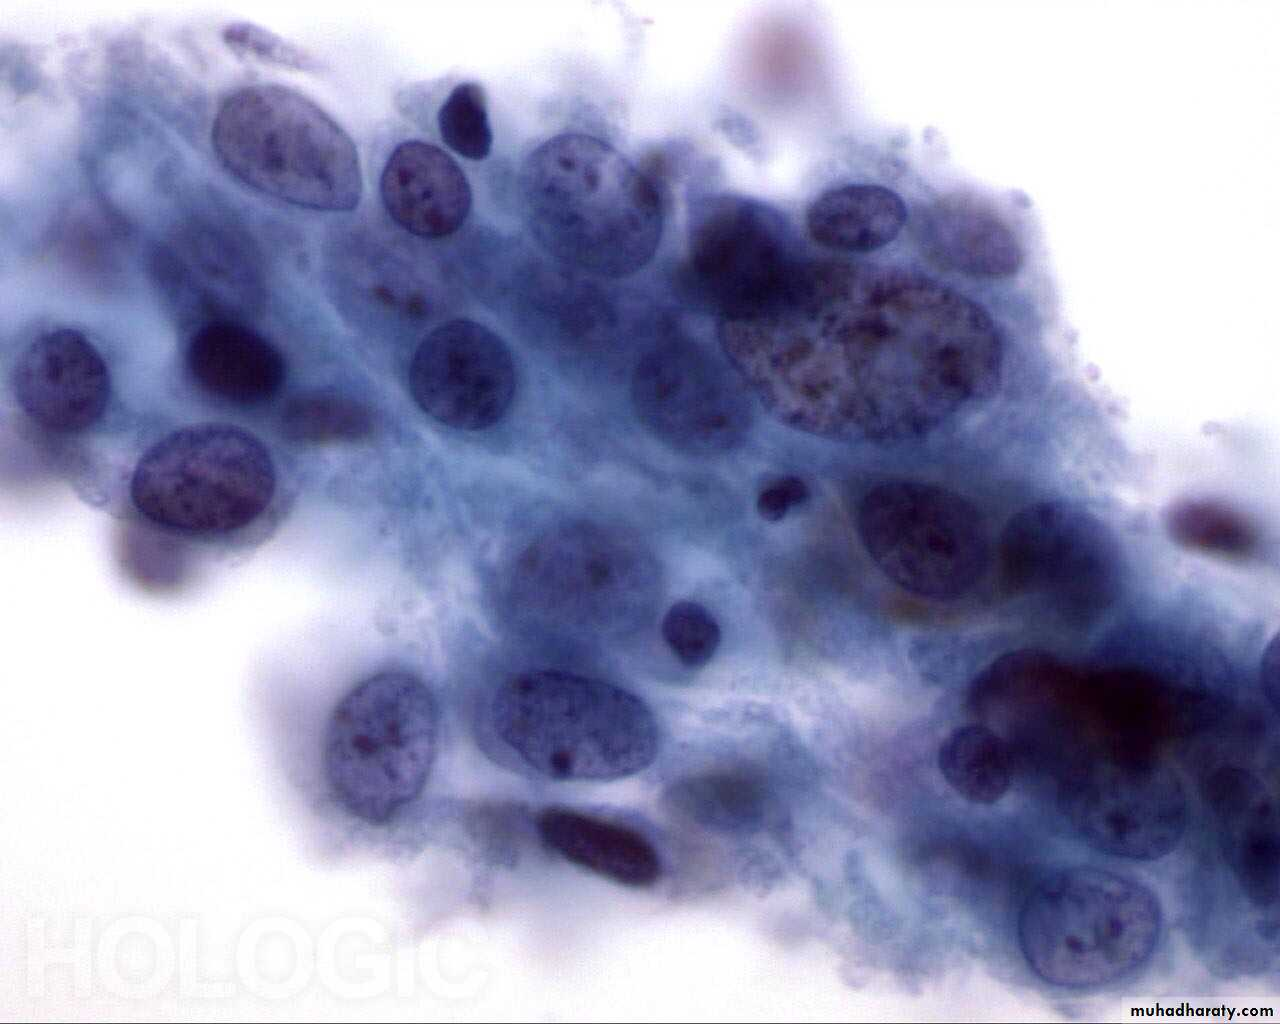 Cytopathology